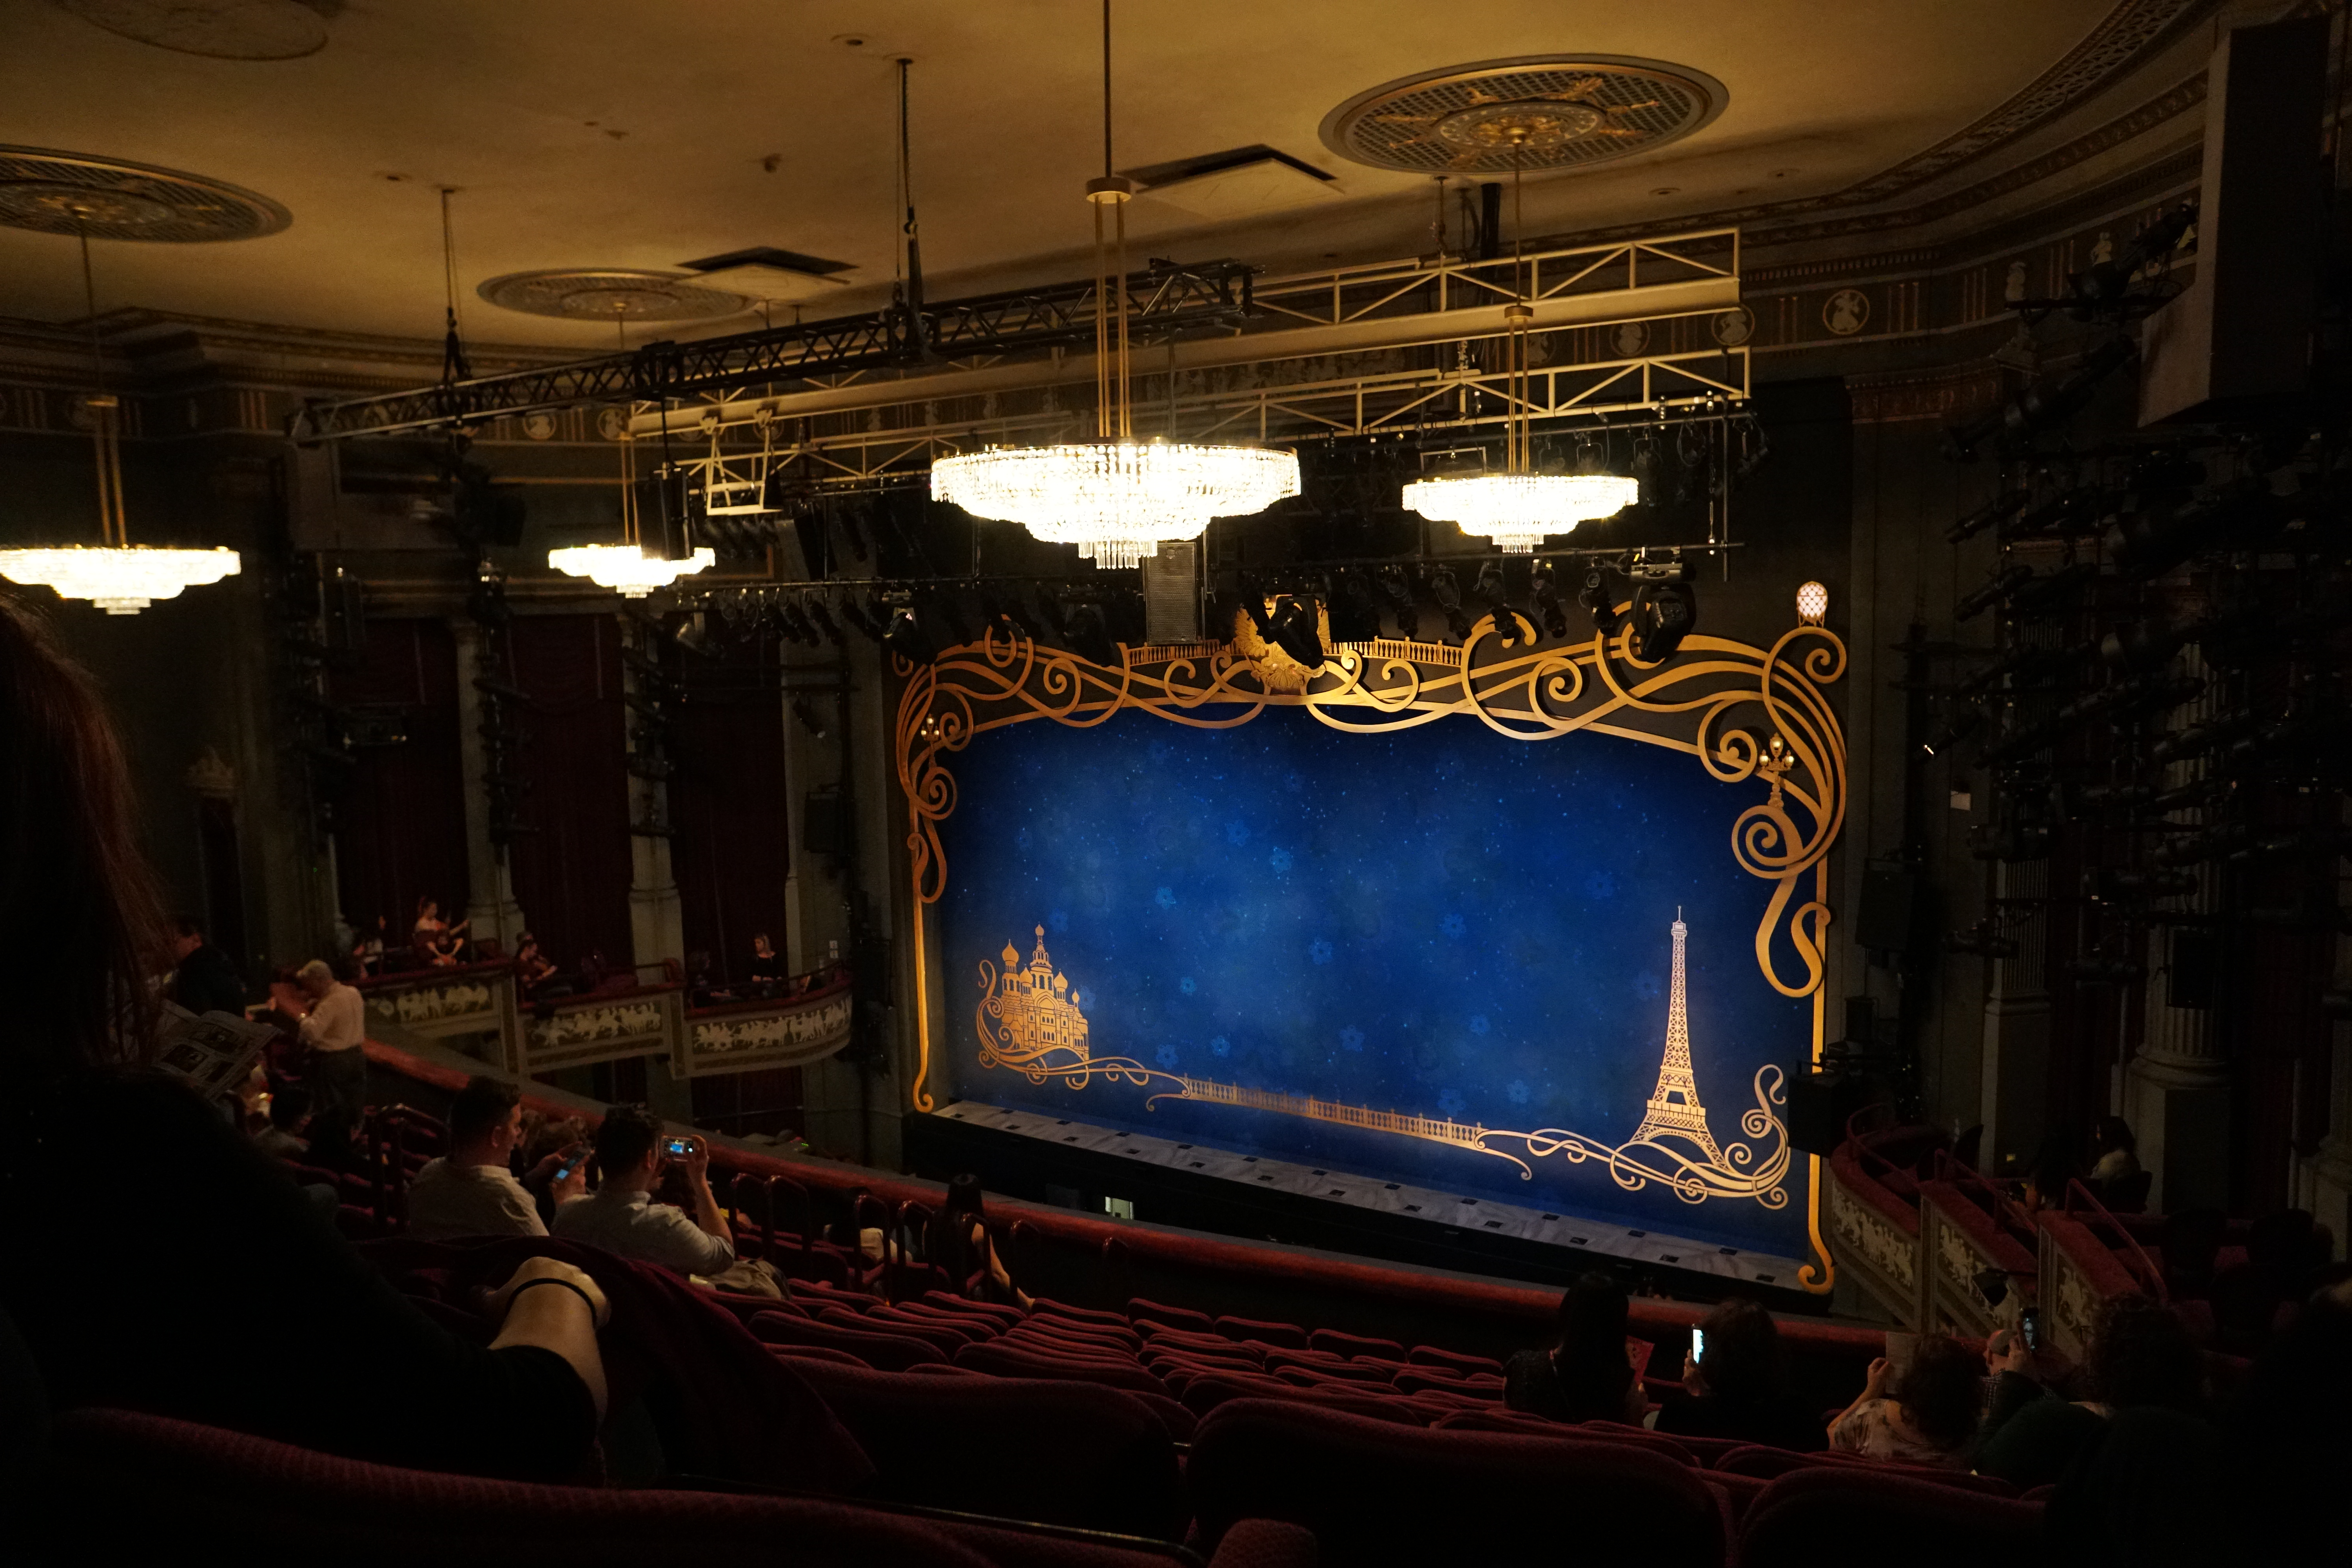 Anastasia Broadway Show is one of the top things to do in NYC